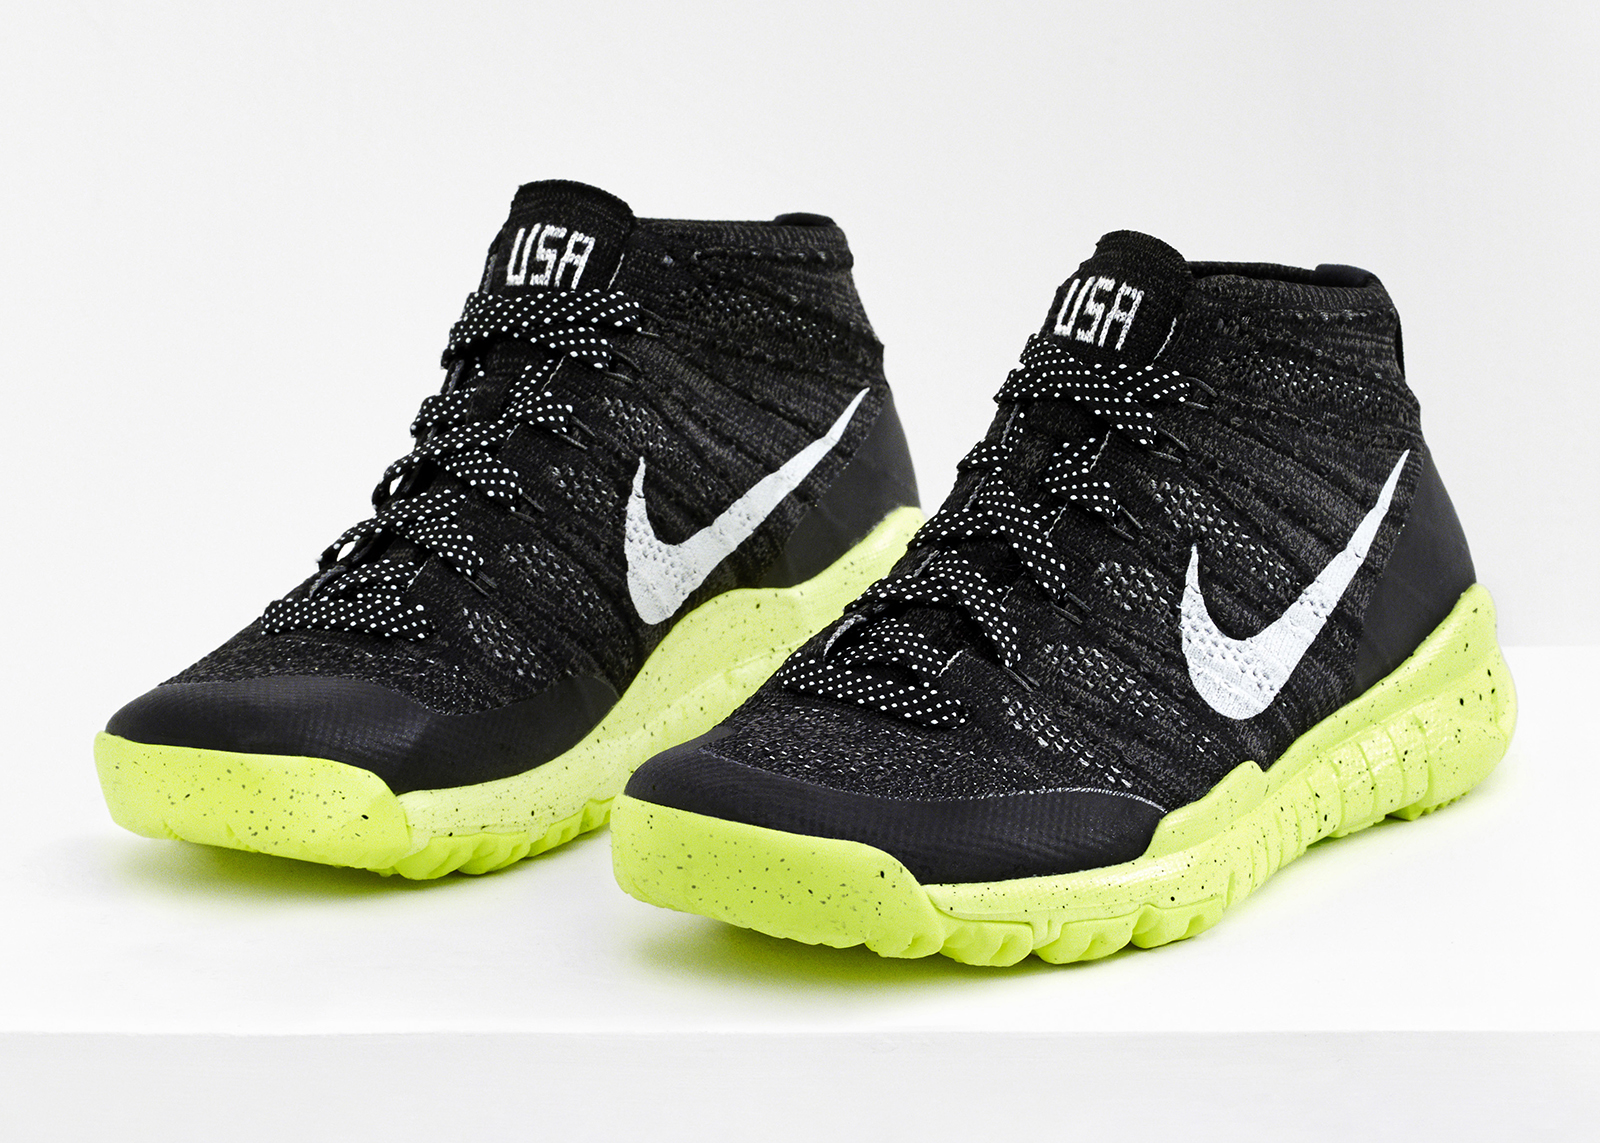 Nike_Team_USA_Winter_Collection_6